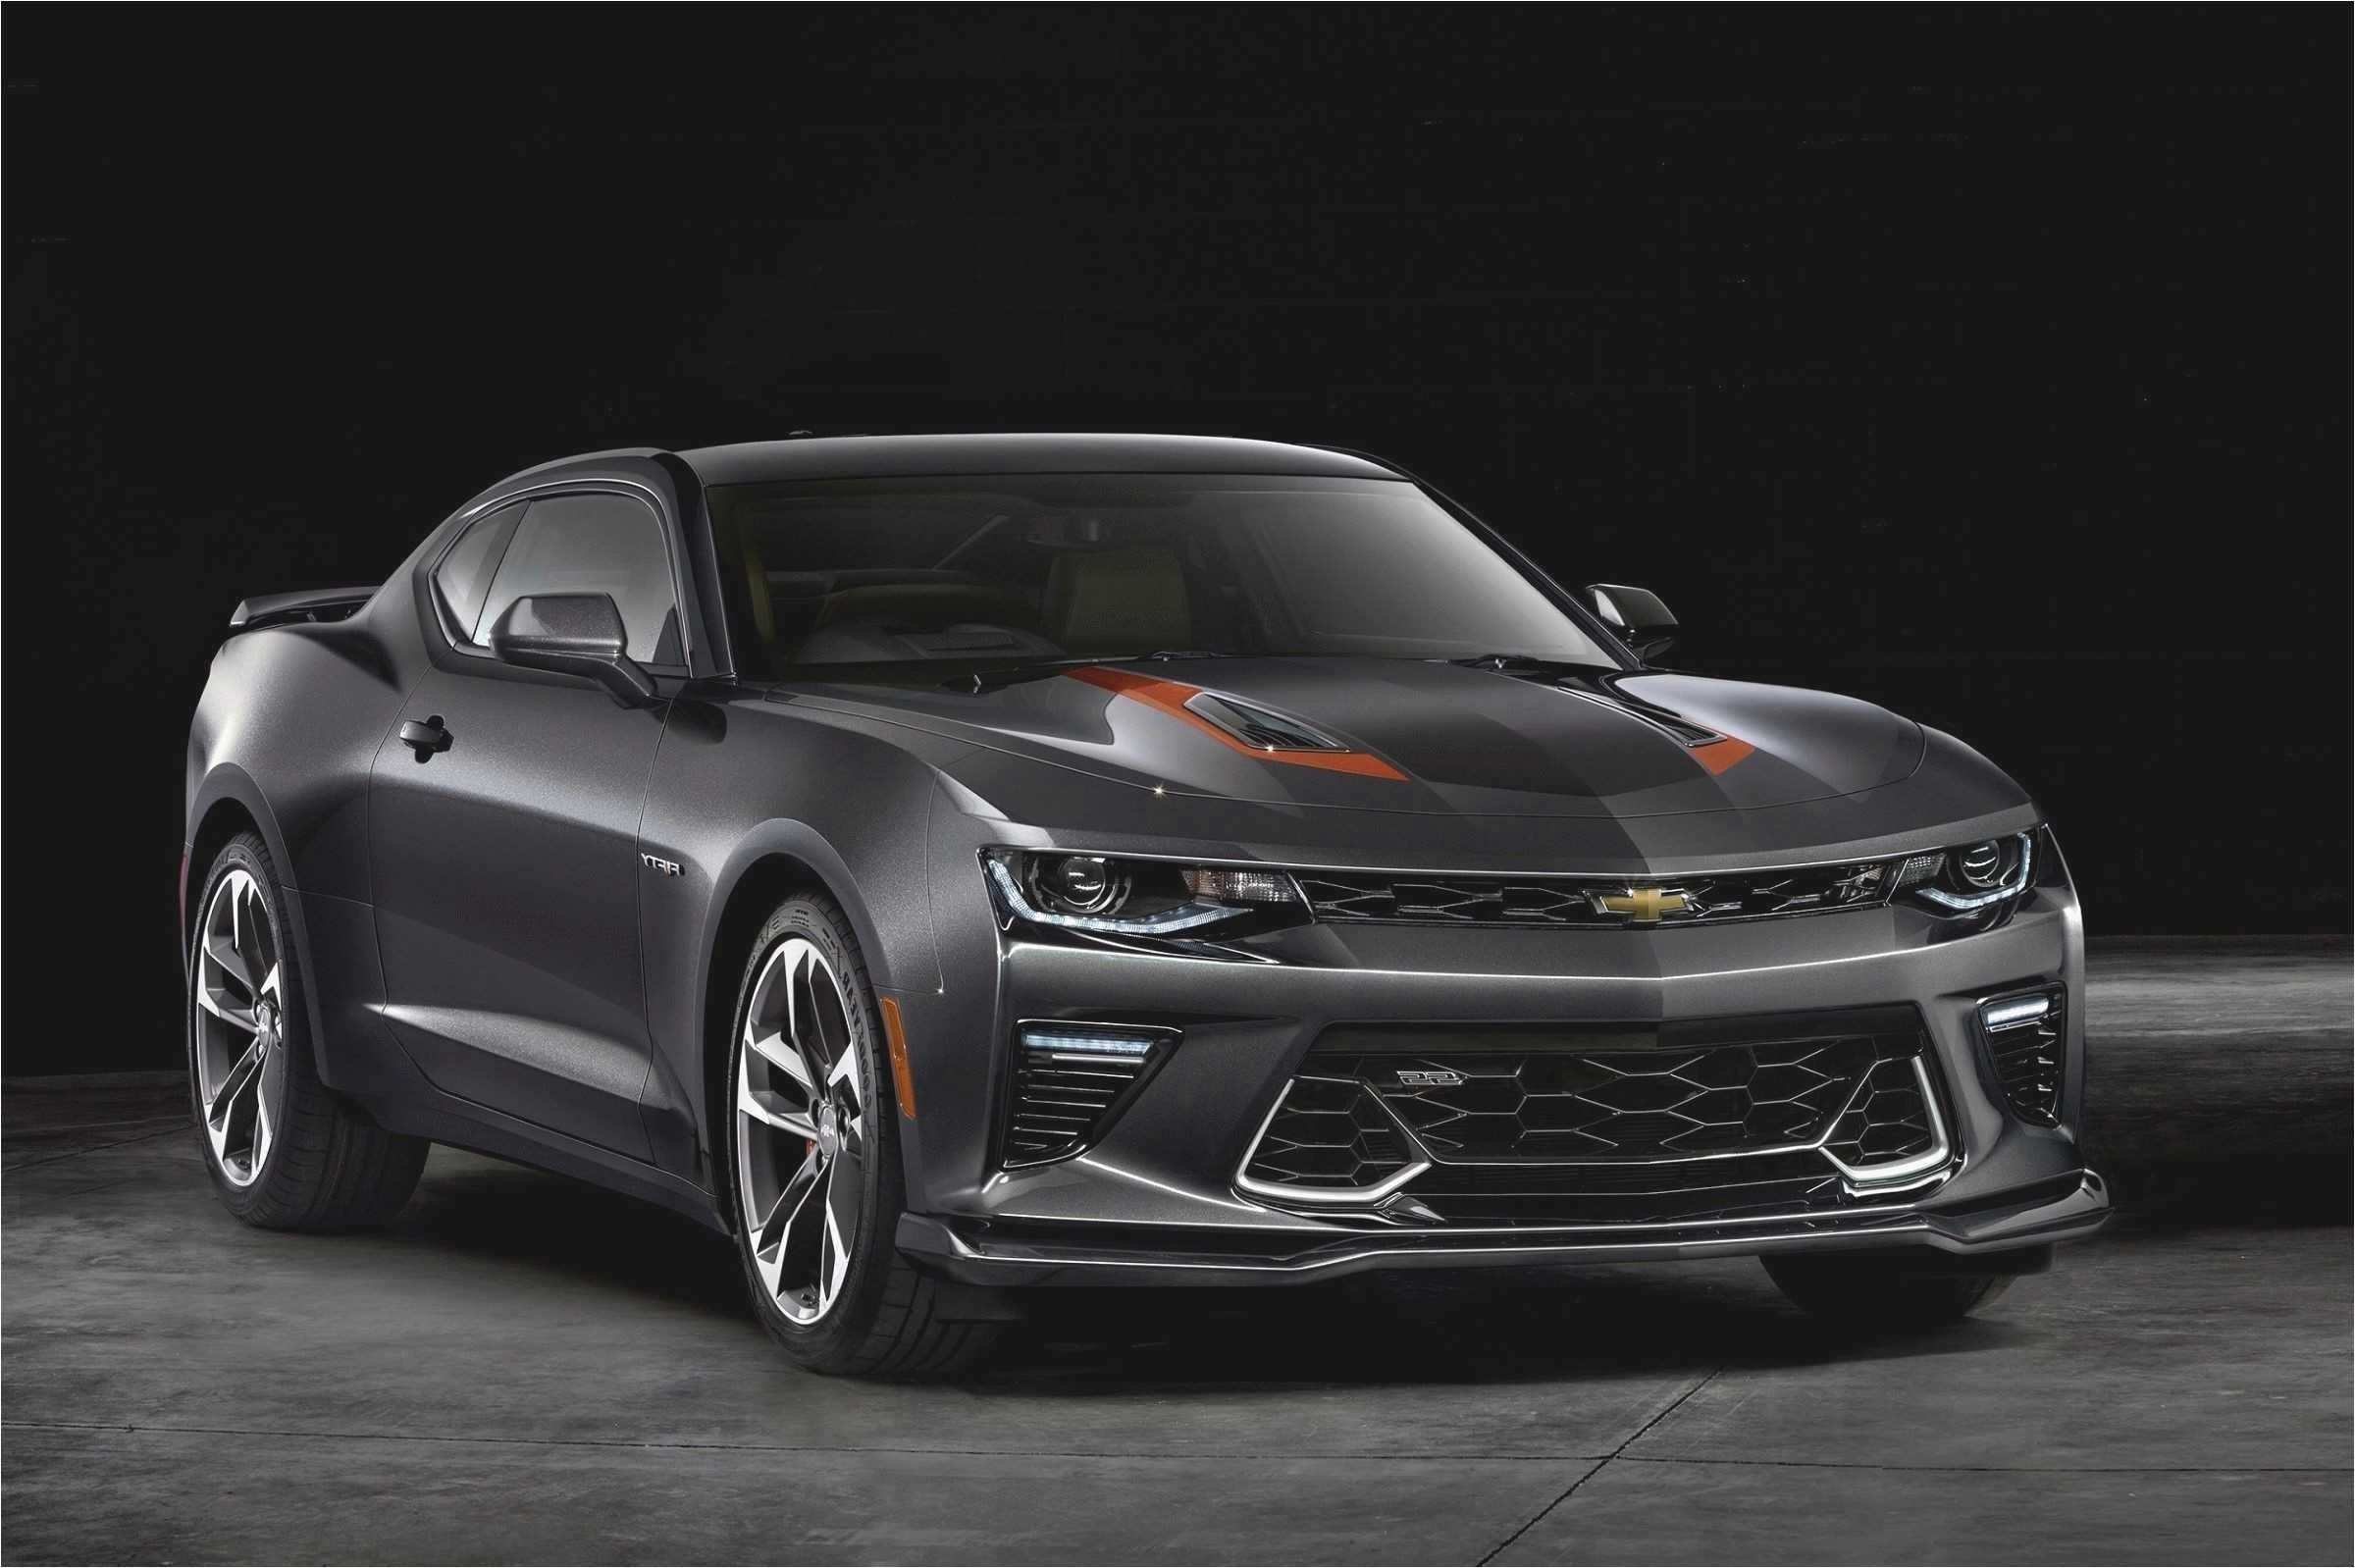 20 Best 2019 Chevy Nova Ss Prices